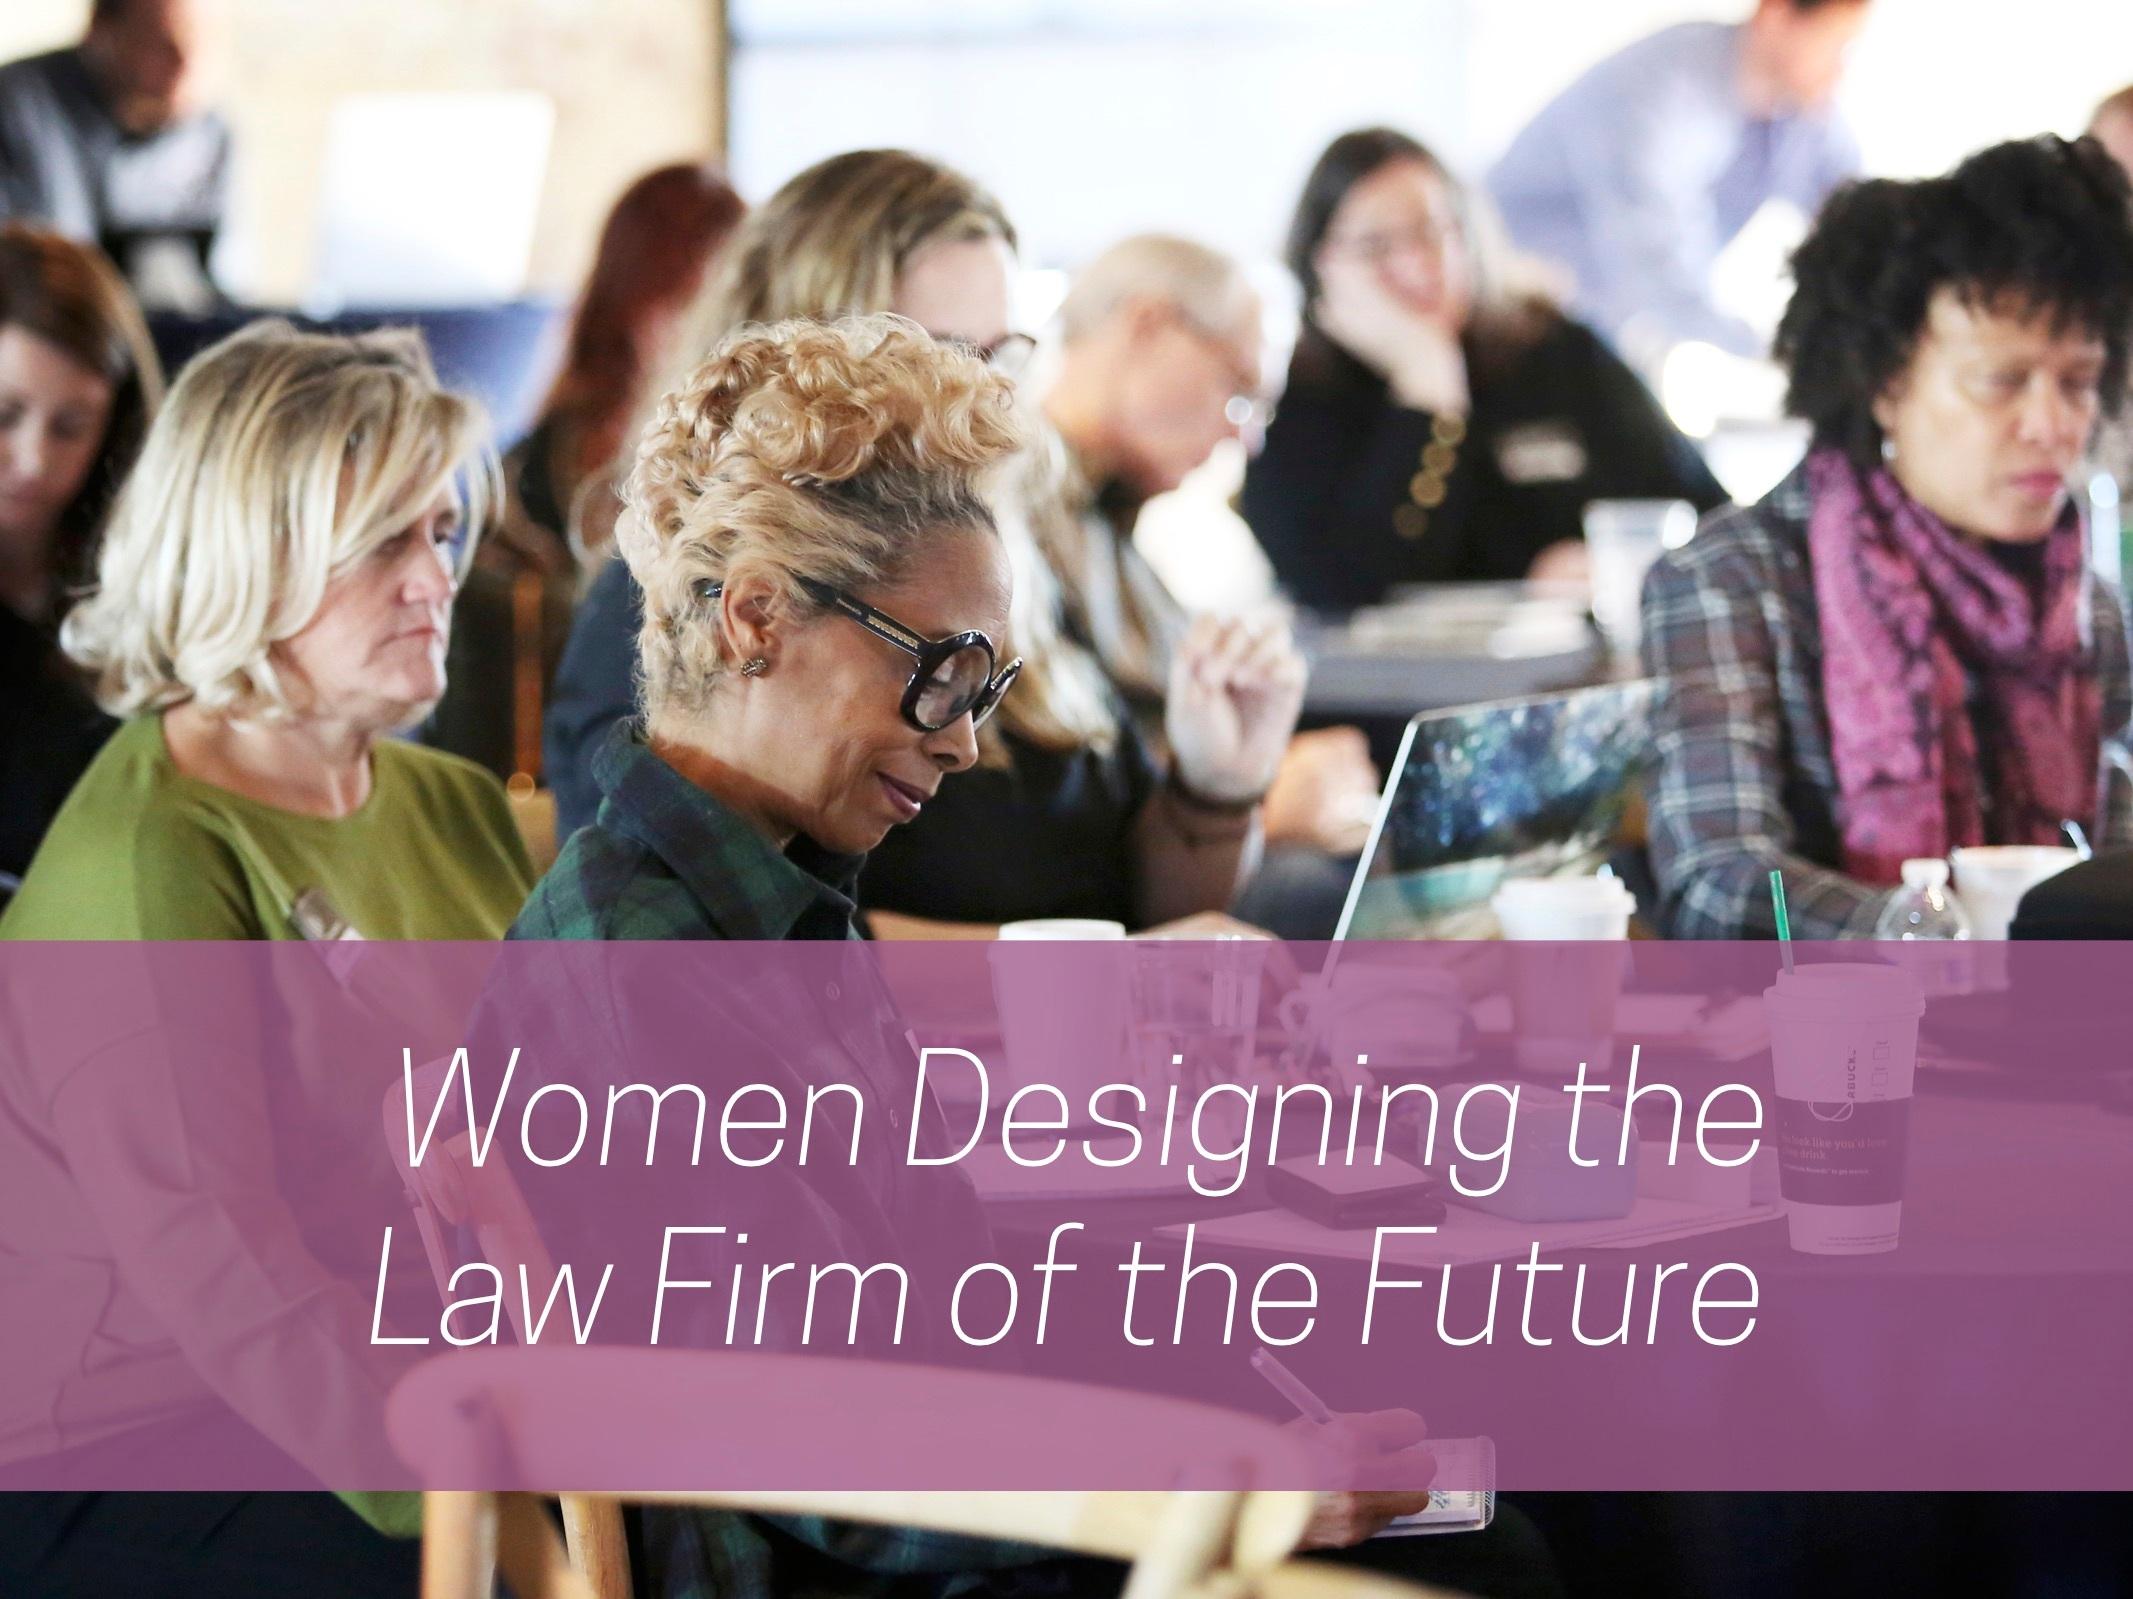 Women are designing the law firm of the future.jpg